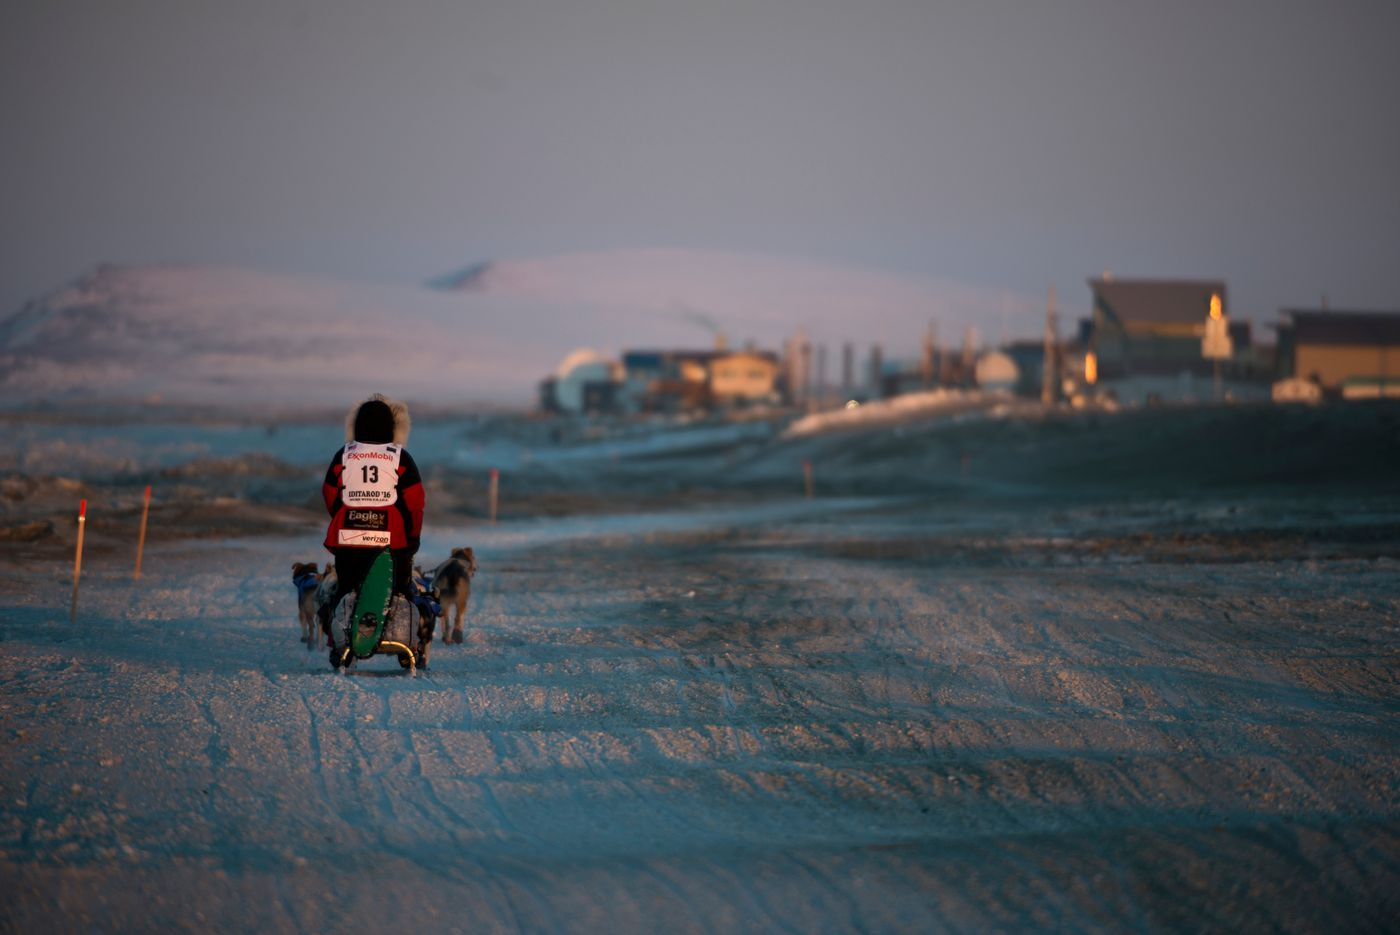 Aliy Zirkle arrived in Nome on March 15, 2016, and claimed third place in the Iditarod Trail Sled Dog Race. (Marc Lester / ADN archive)